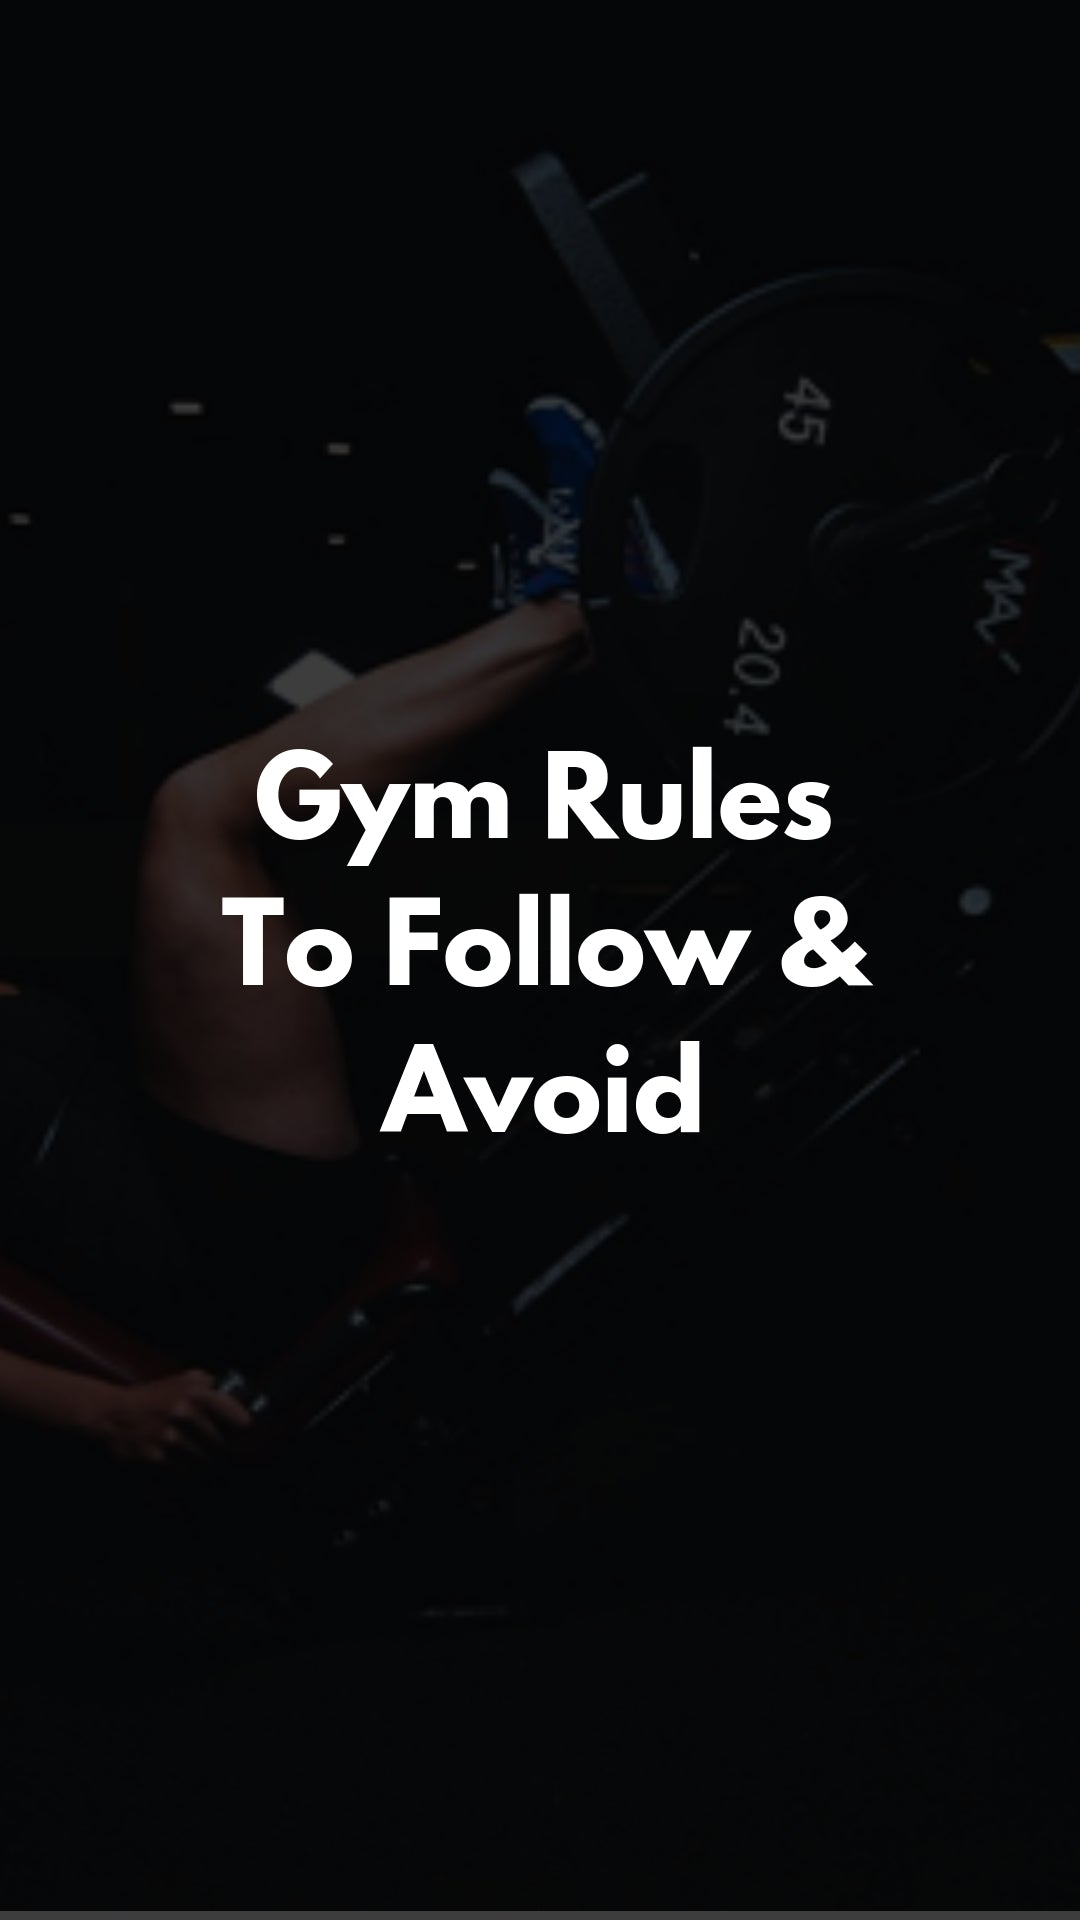 Things To Follow And Avoid When Working Out At The Gym